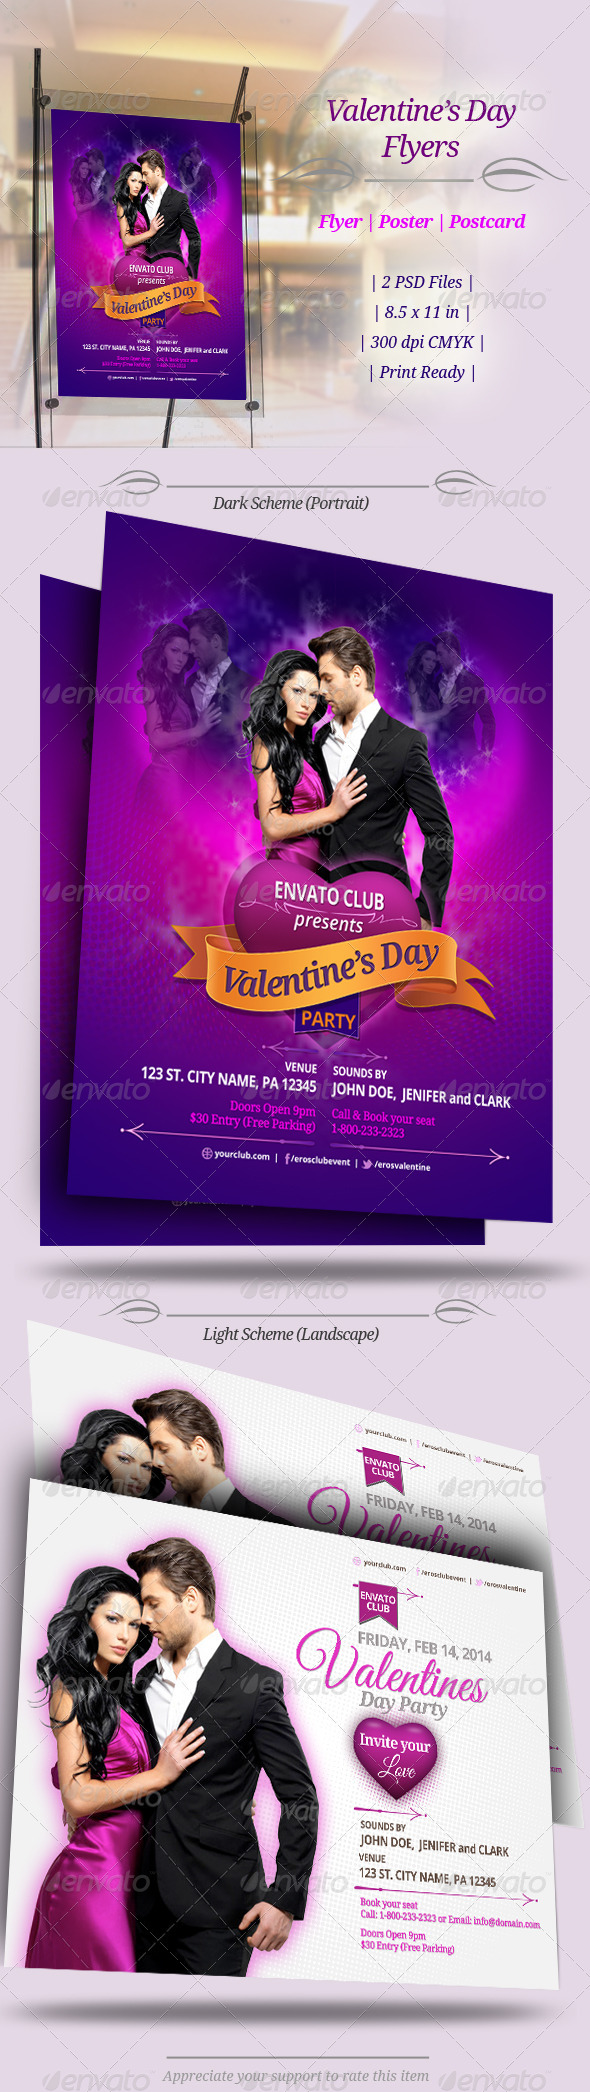 Valentines Day Party Flyers - Clubs & Parties Events